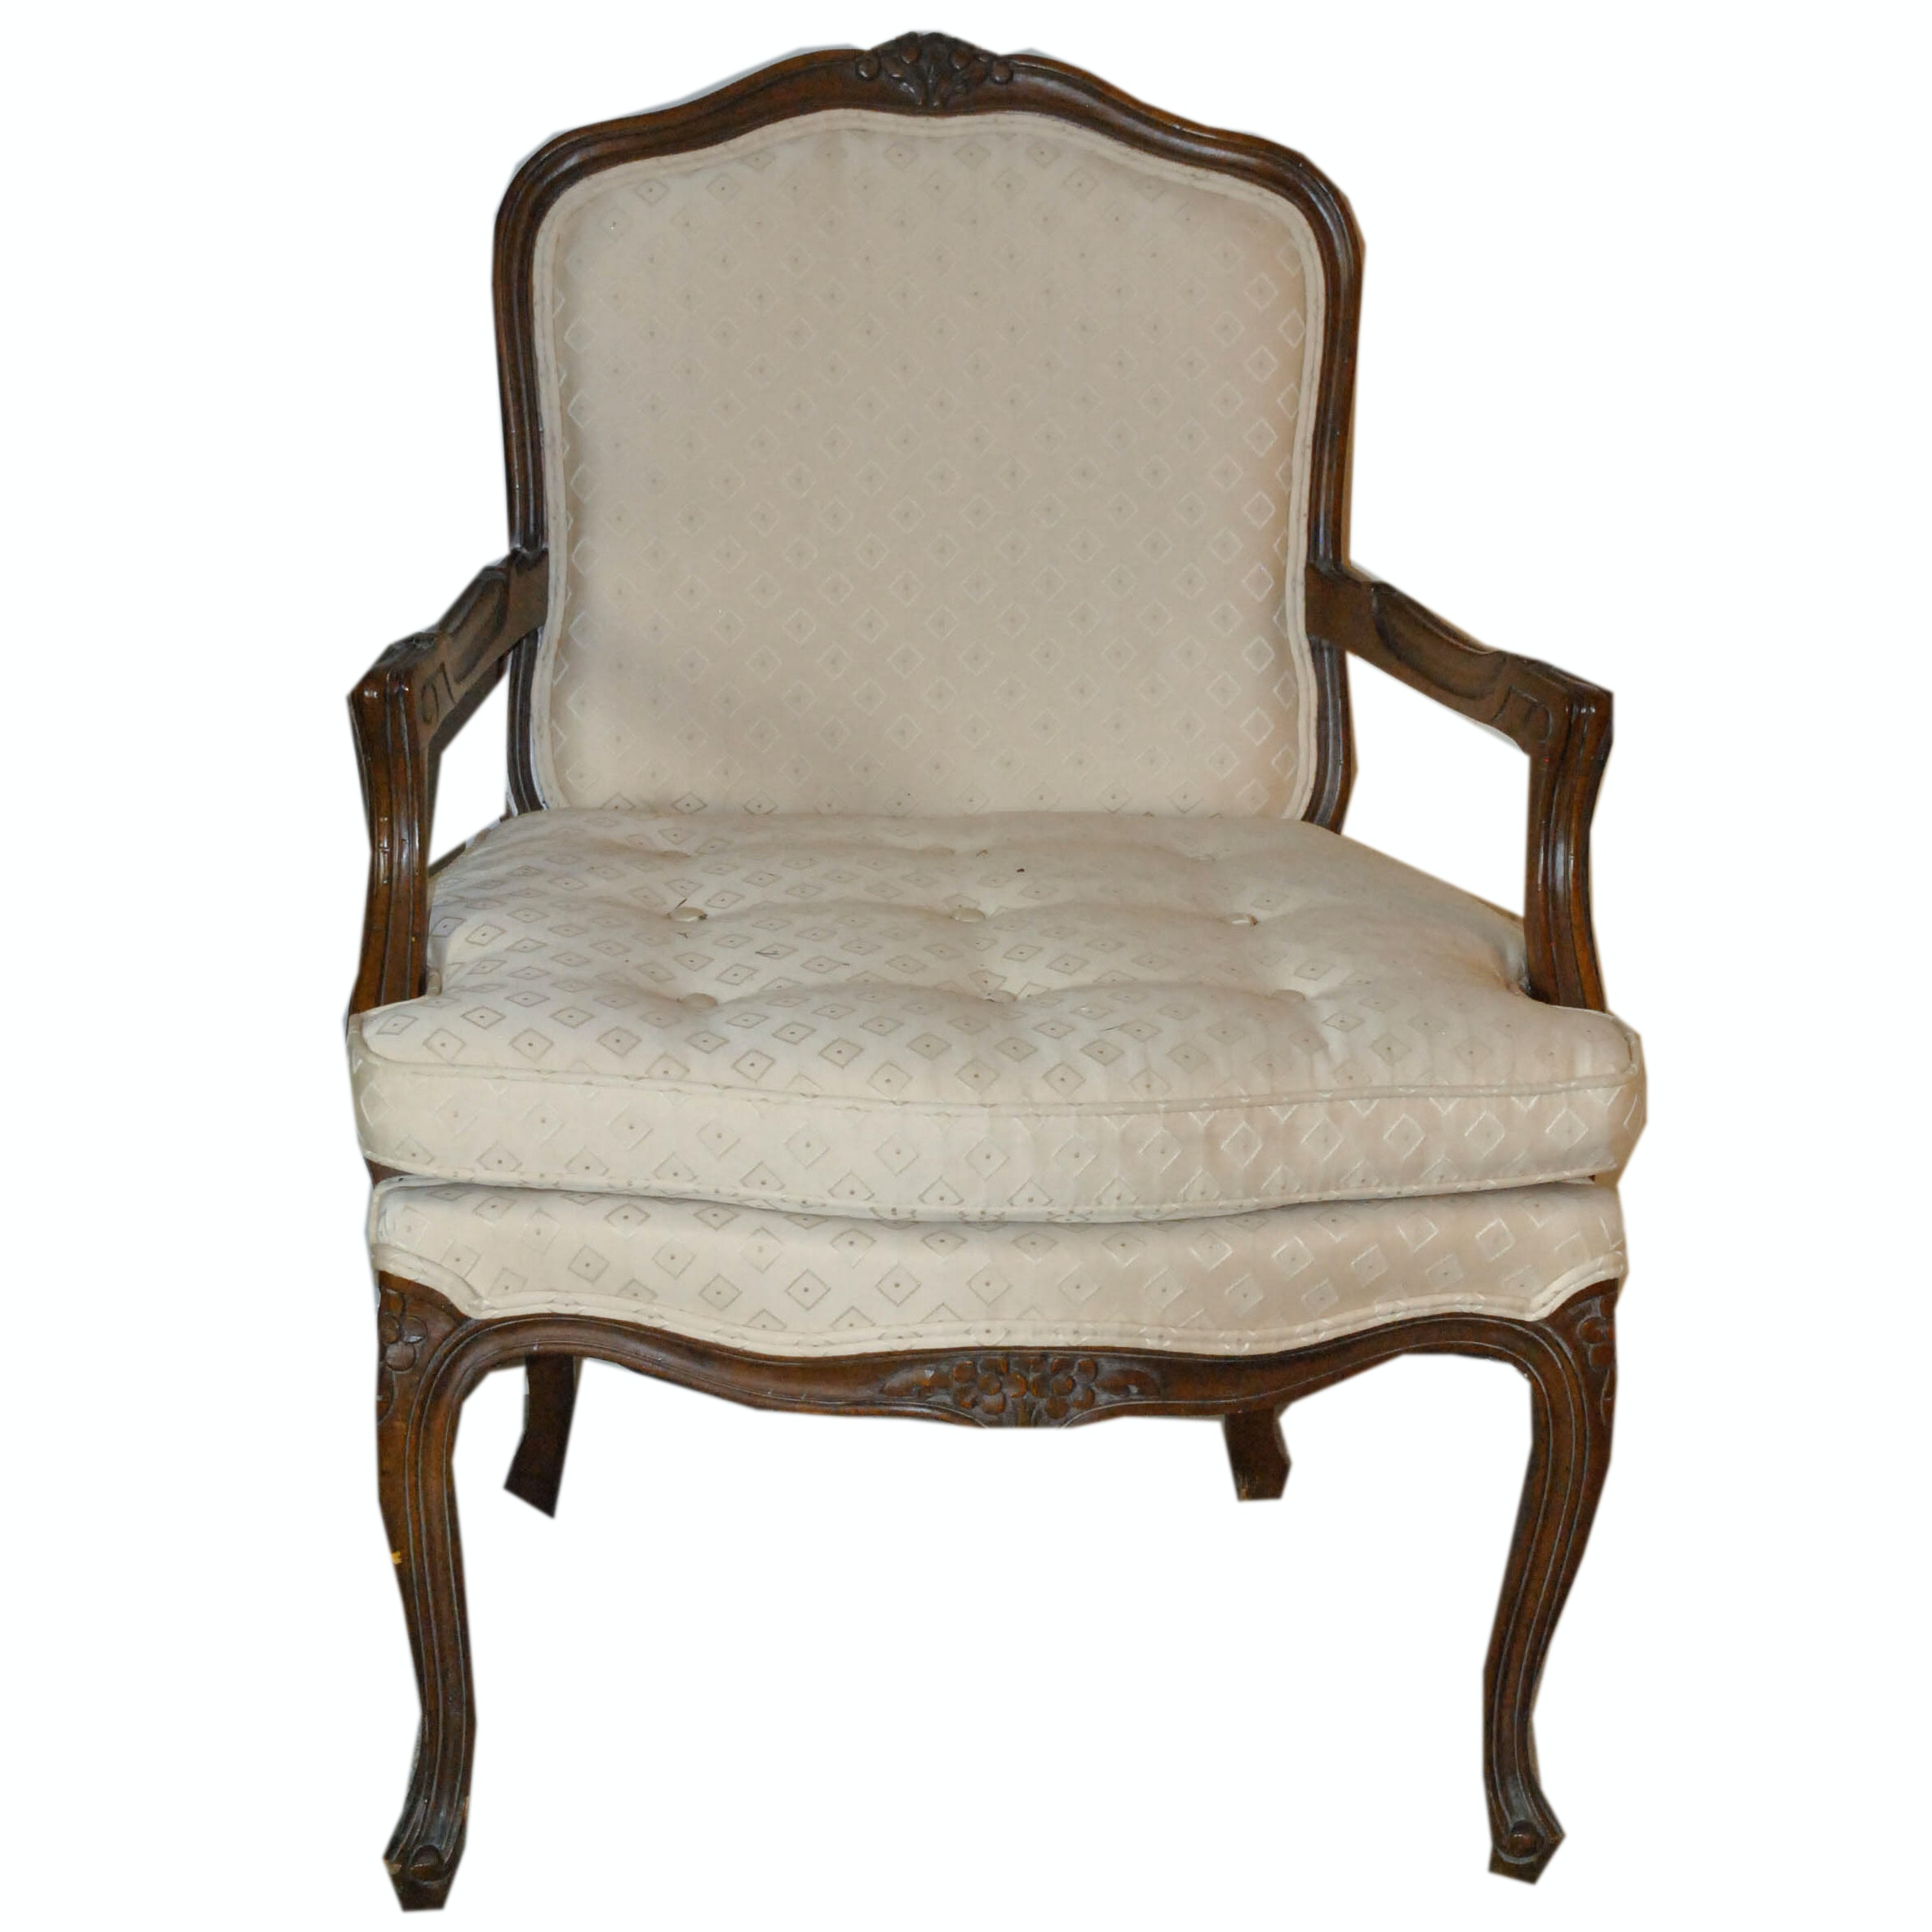 French Provincial Style Upholstered Armchair by Woodmark Originals